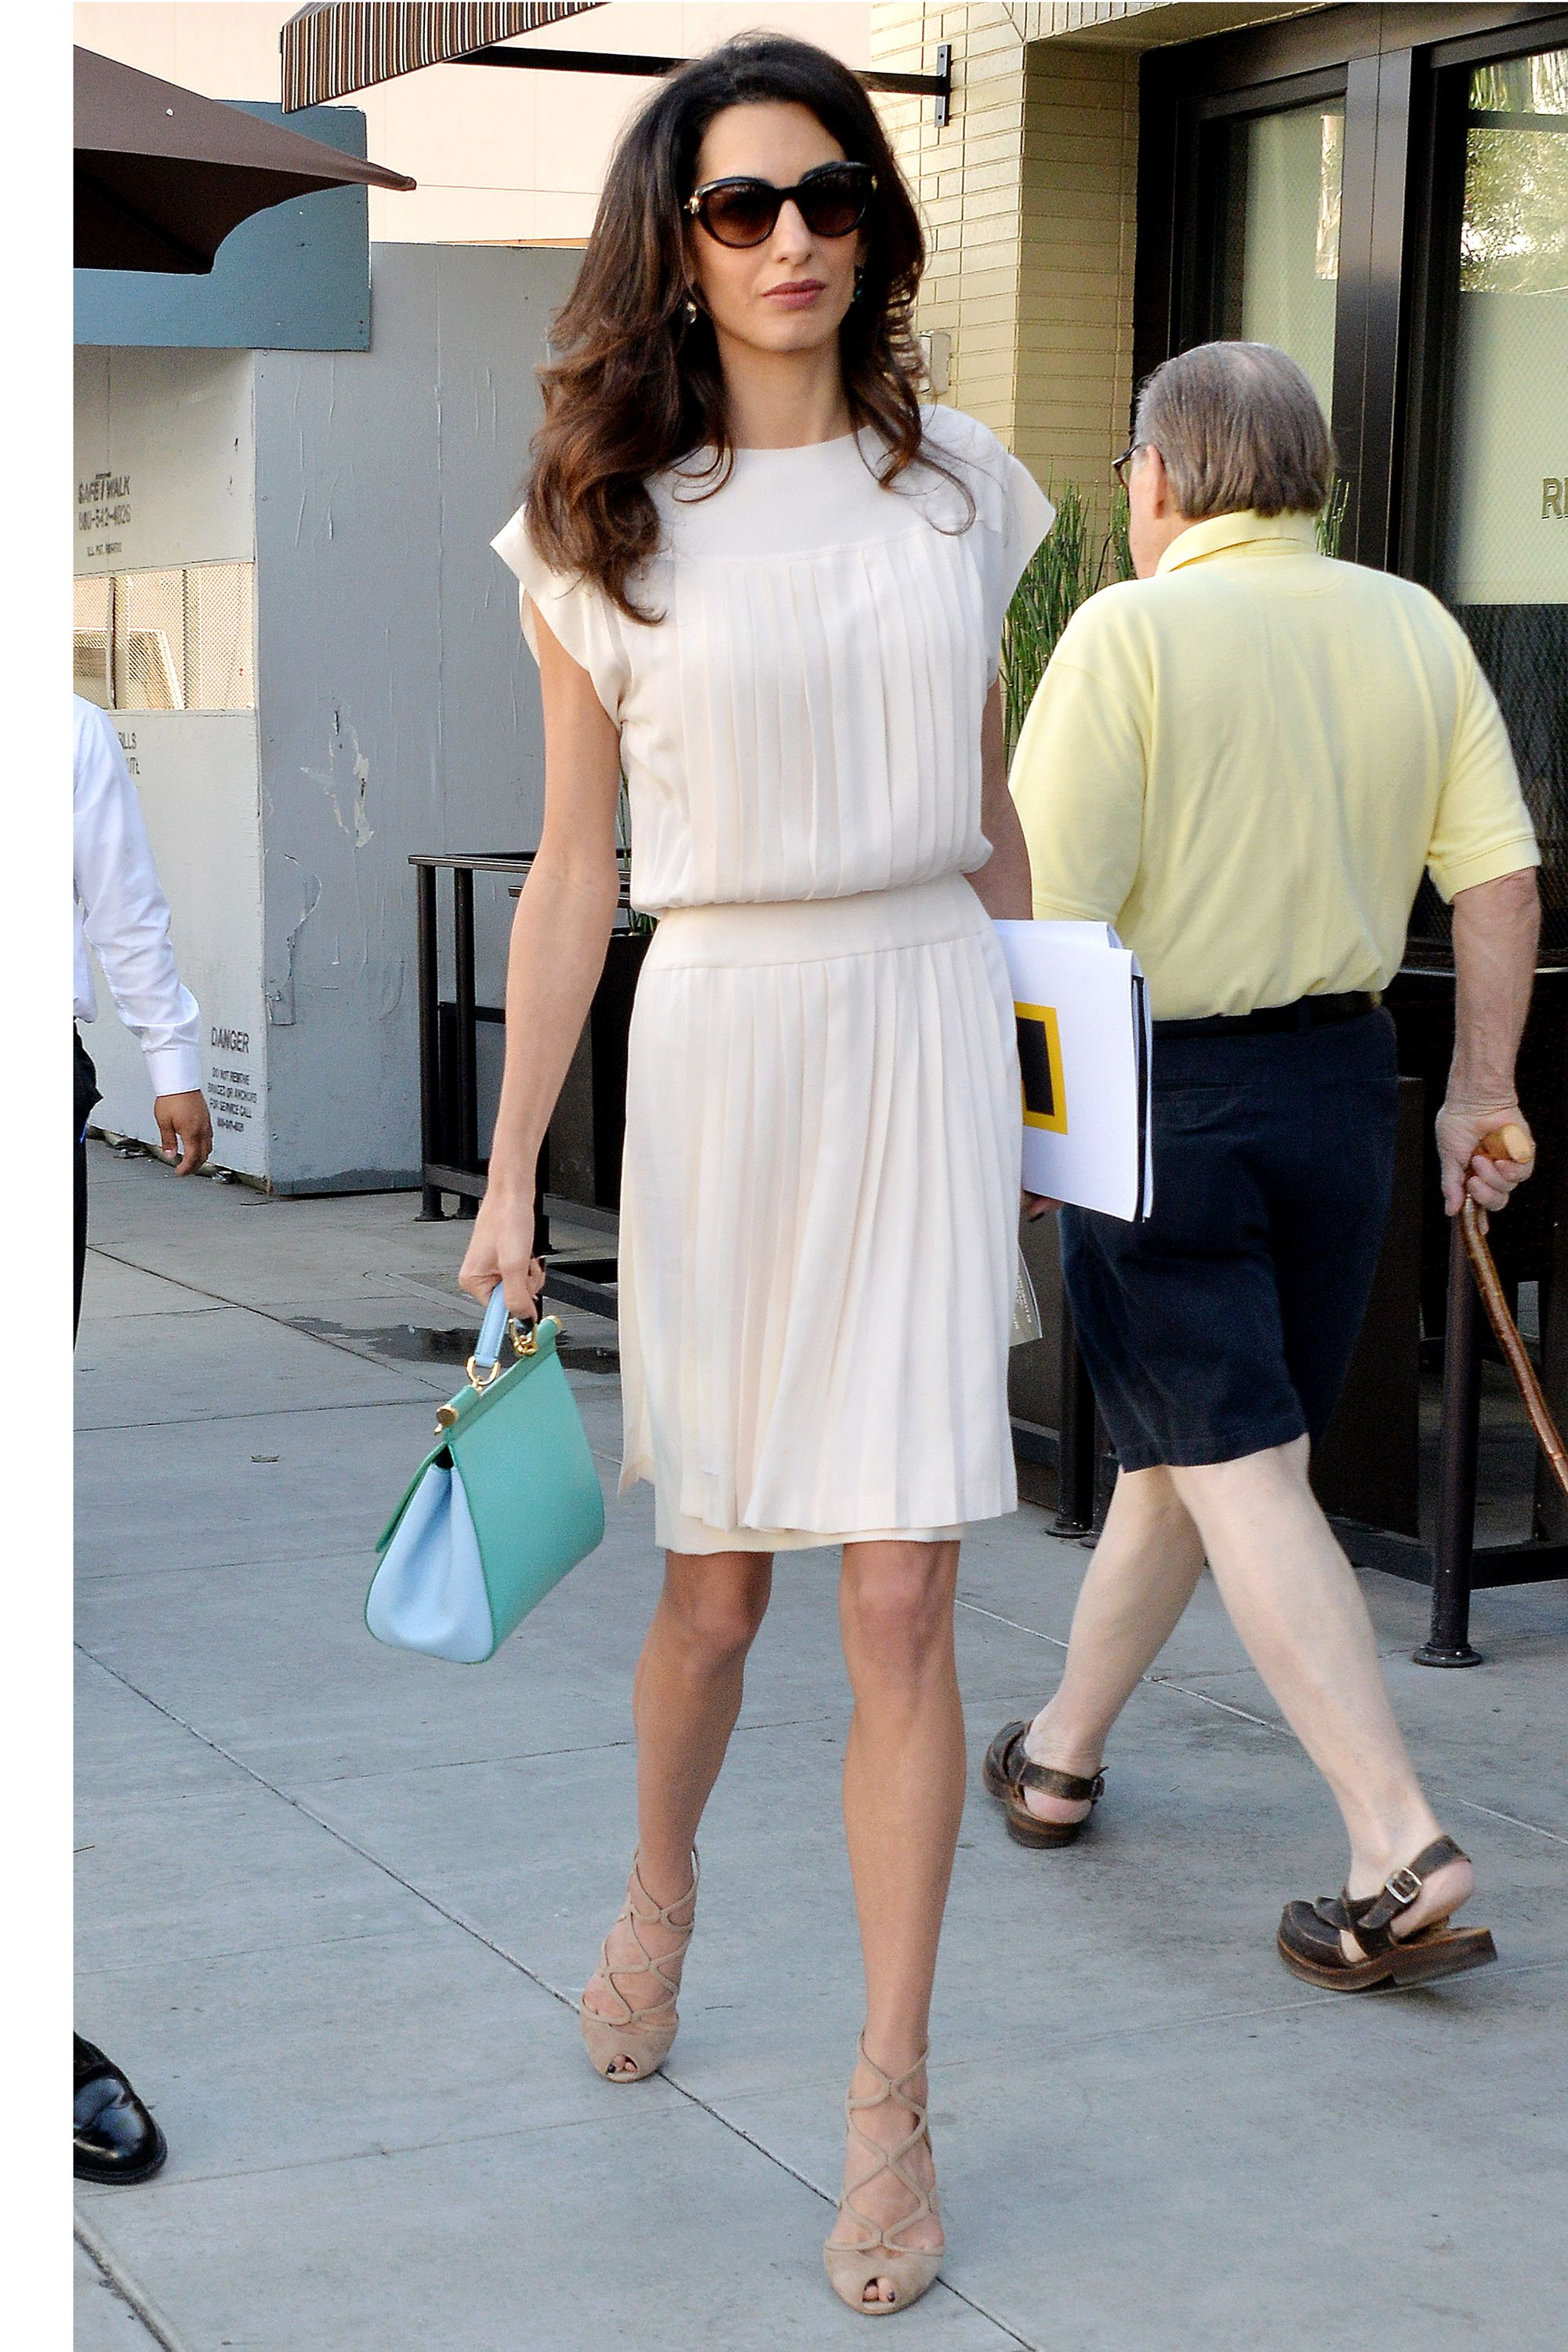 883890cb97c0 Amal Clooney s Best Looks - Pictures of Amal Clooney s Top Fashion Moments